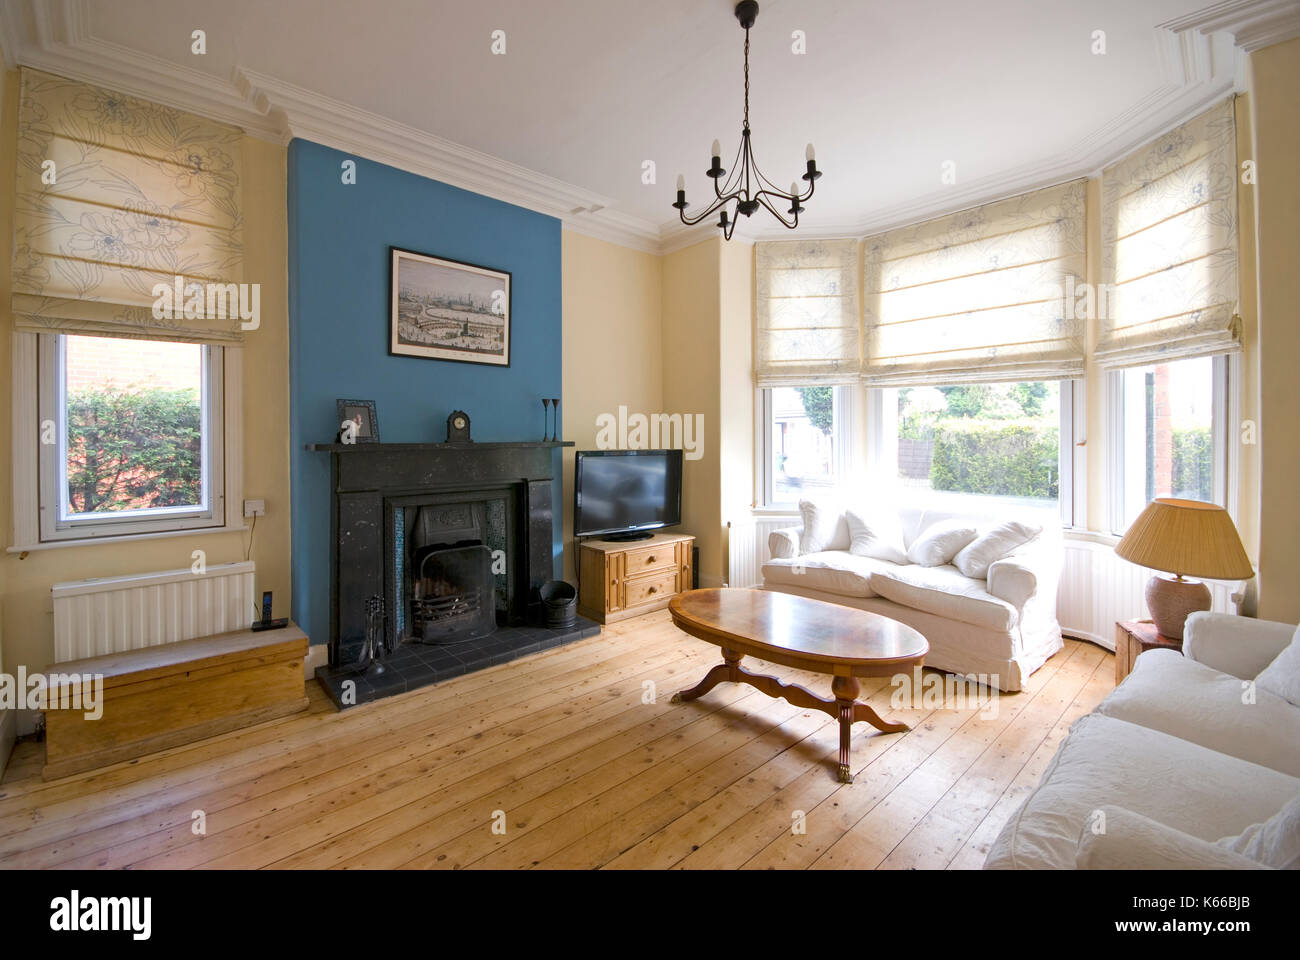 Sitting Room In Victorian House With Large Bay Windows Stock Photo Alamy